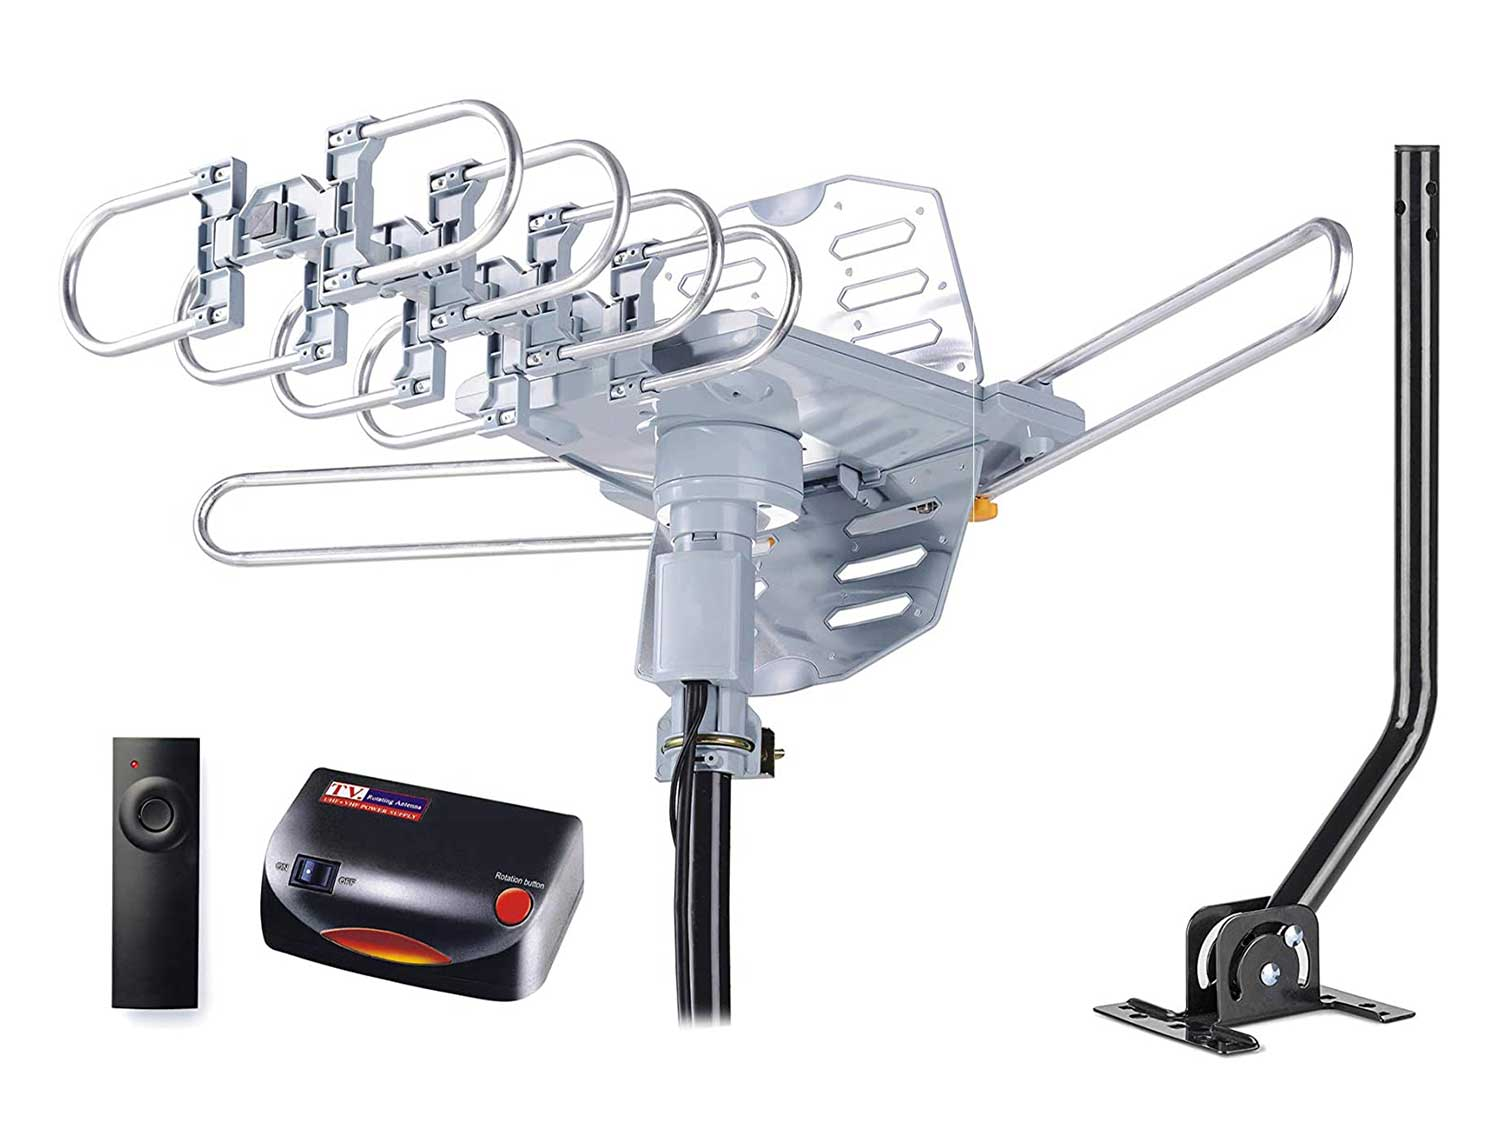 pingbingding HDTV Antenna Amplified Digital Outdoor Antenna with Mounting Pole & 40FT RG6 Coax Cable--150 Miles Range--360 Degree Rotation Wireless Remote--Snap-On Installation Support 2 TVs